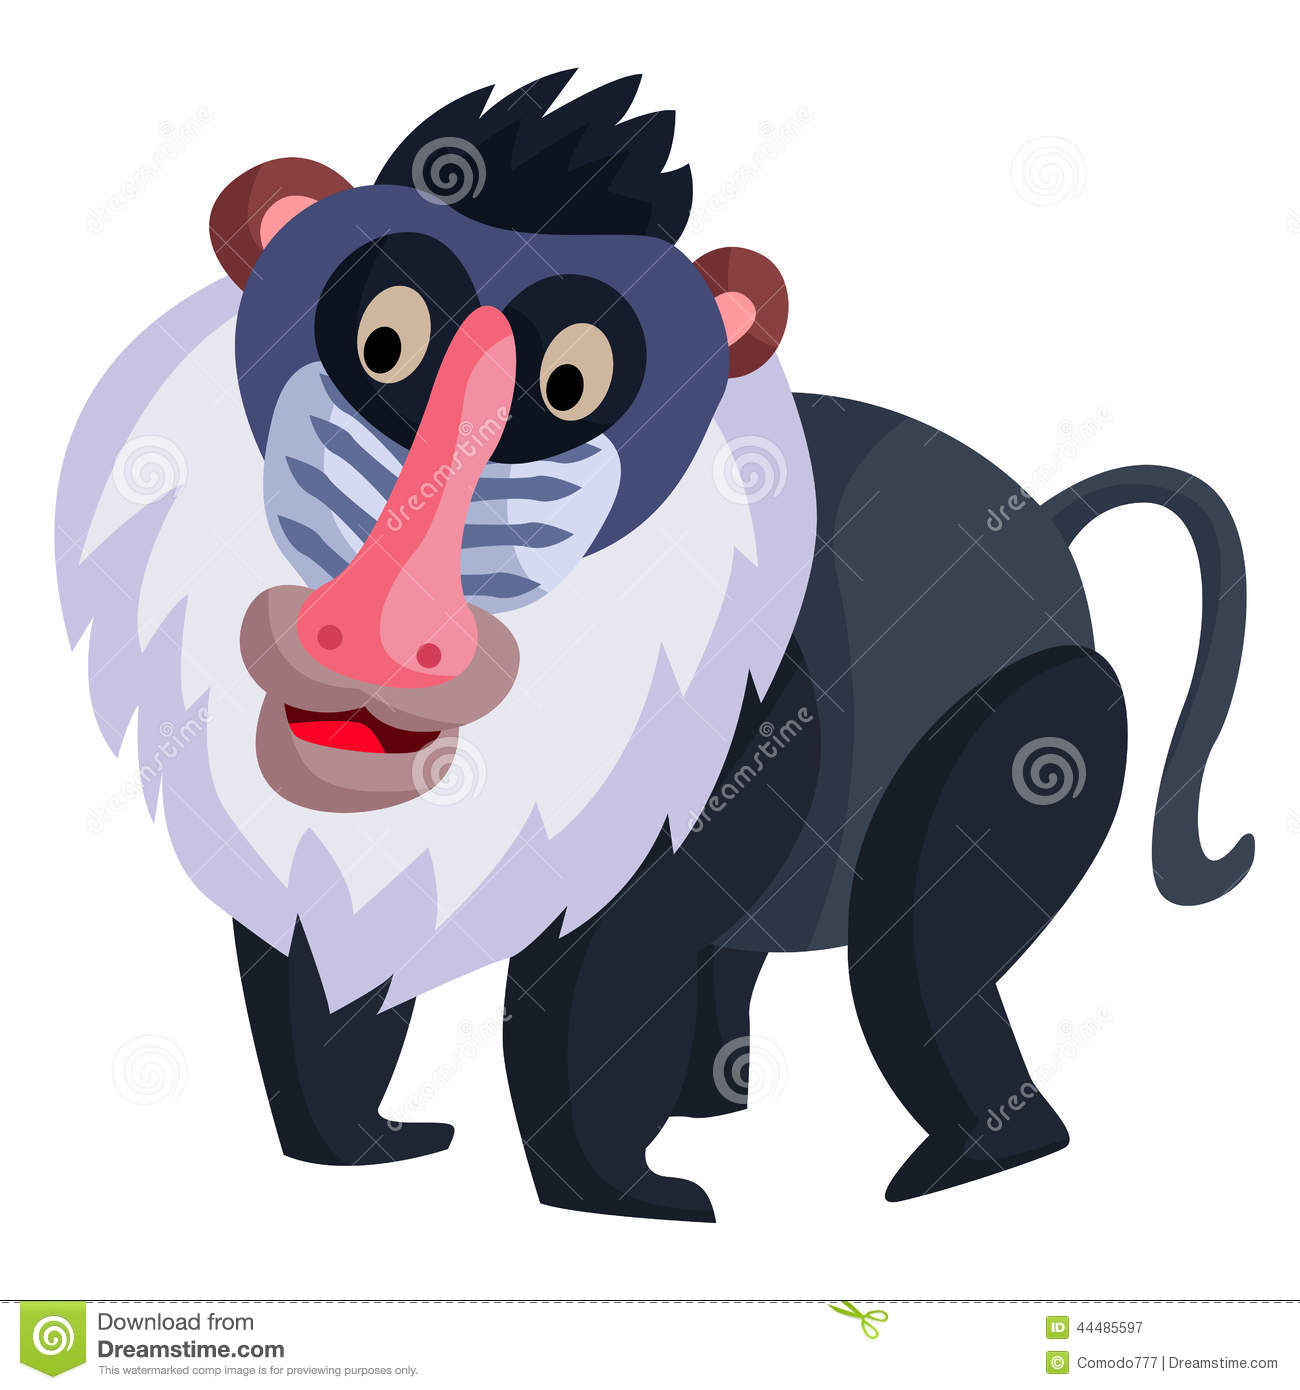 Mandrill clipart #16, Download drawings